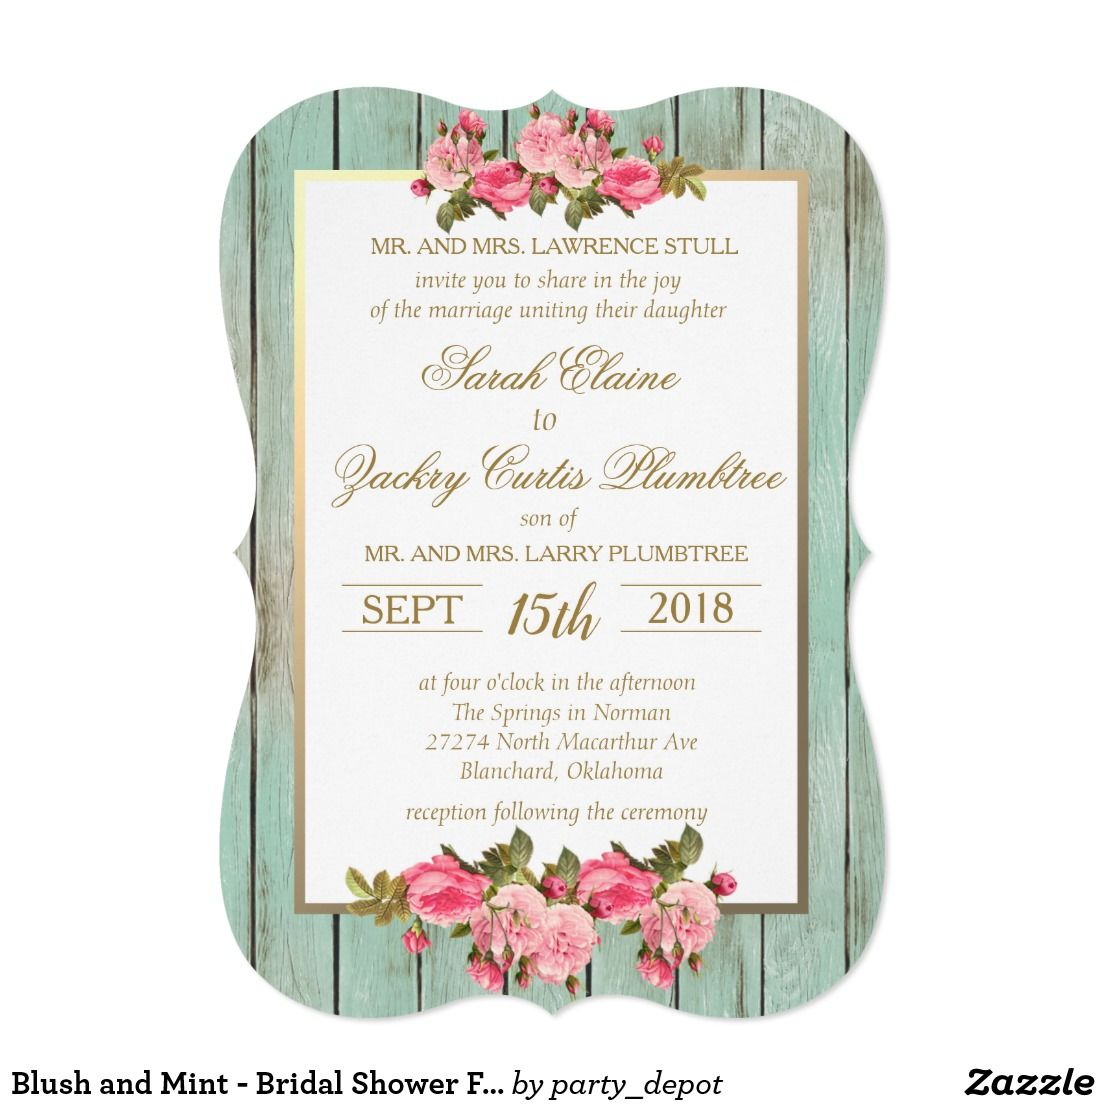 create your own invitation  zazzle  create your own